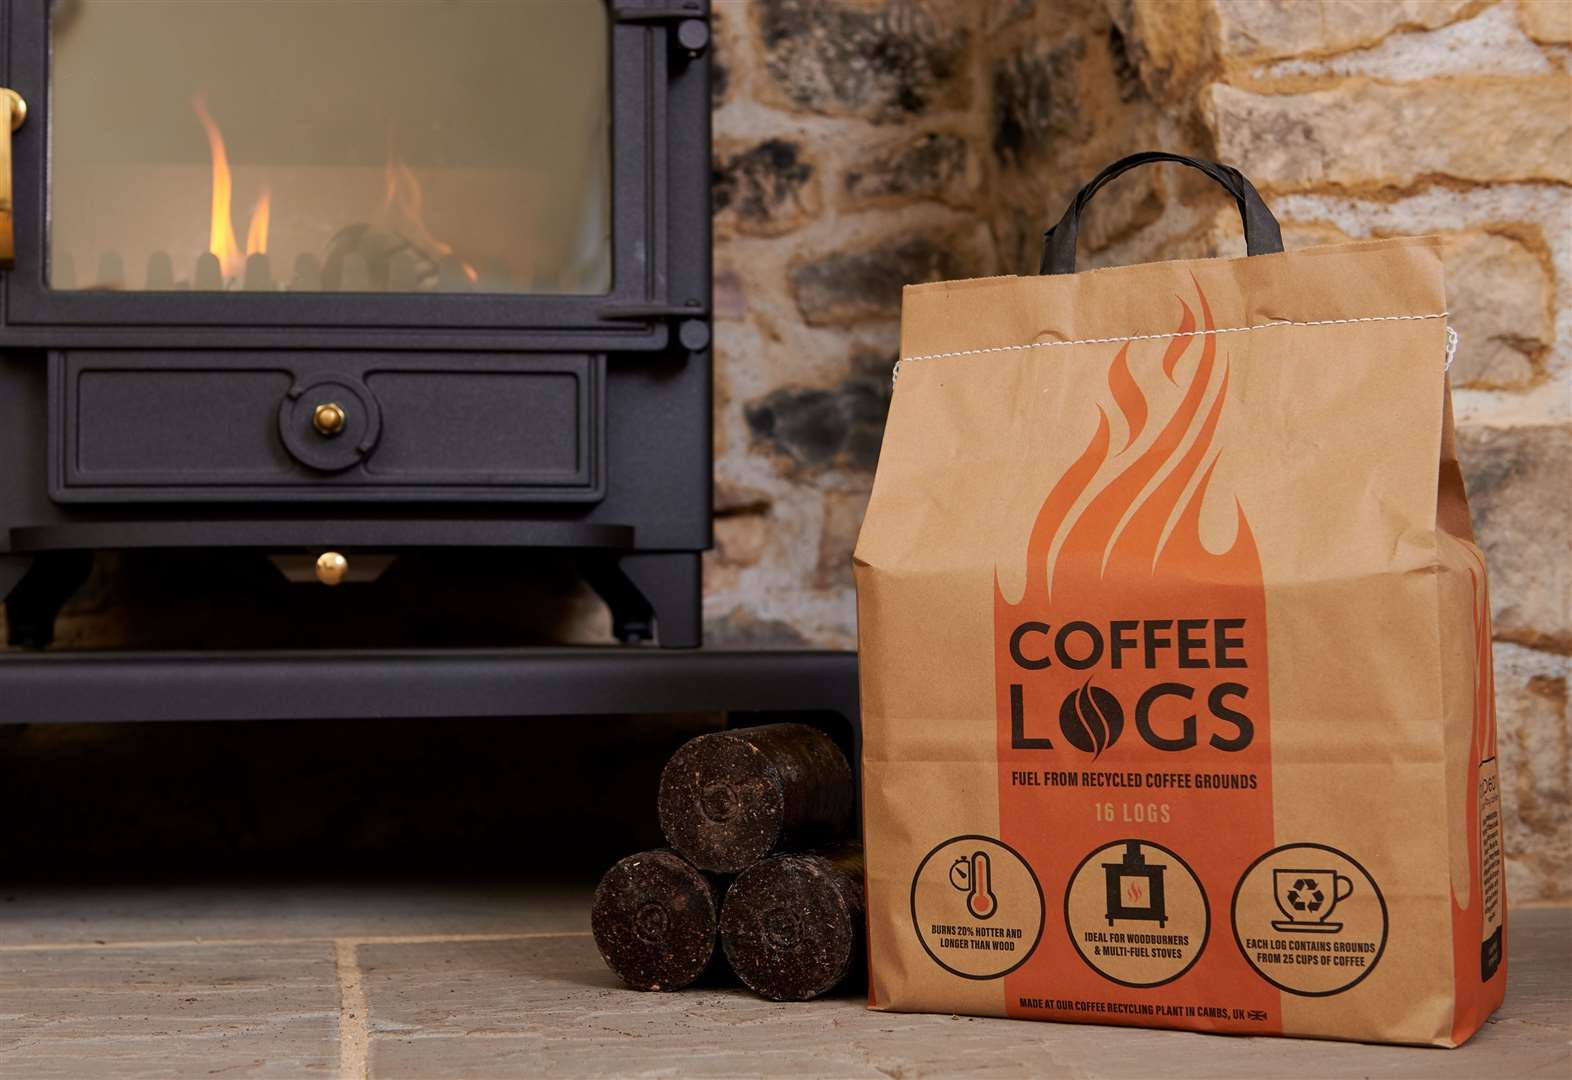 Cool beans! Initiative converting Stansted's waste coffee into logs is grounds for optimism